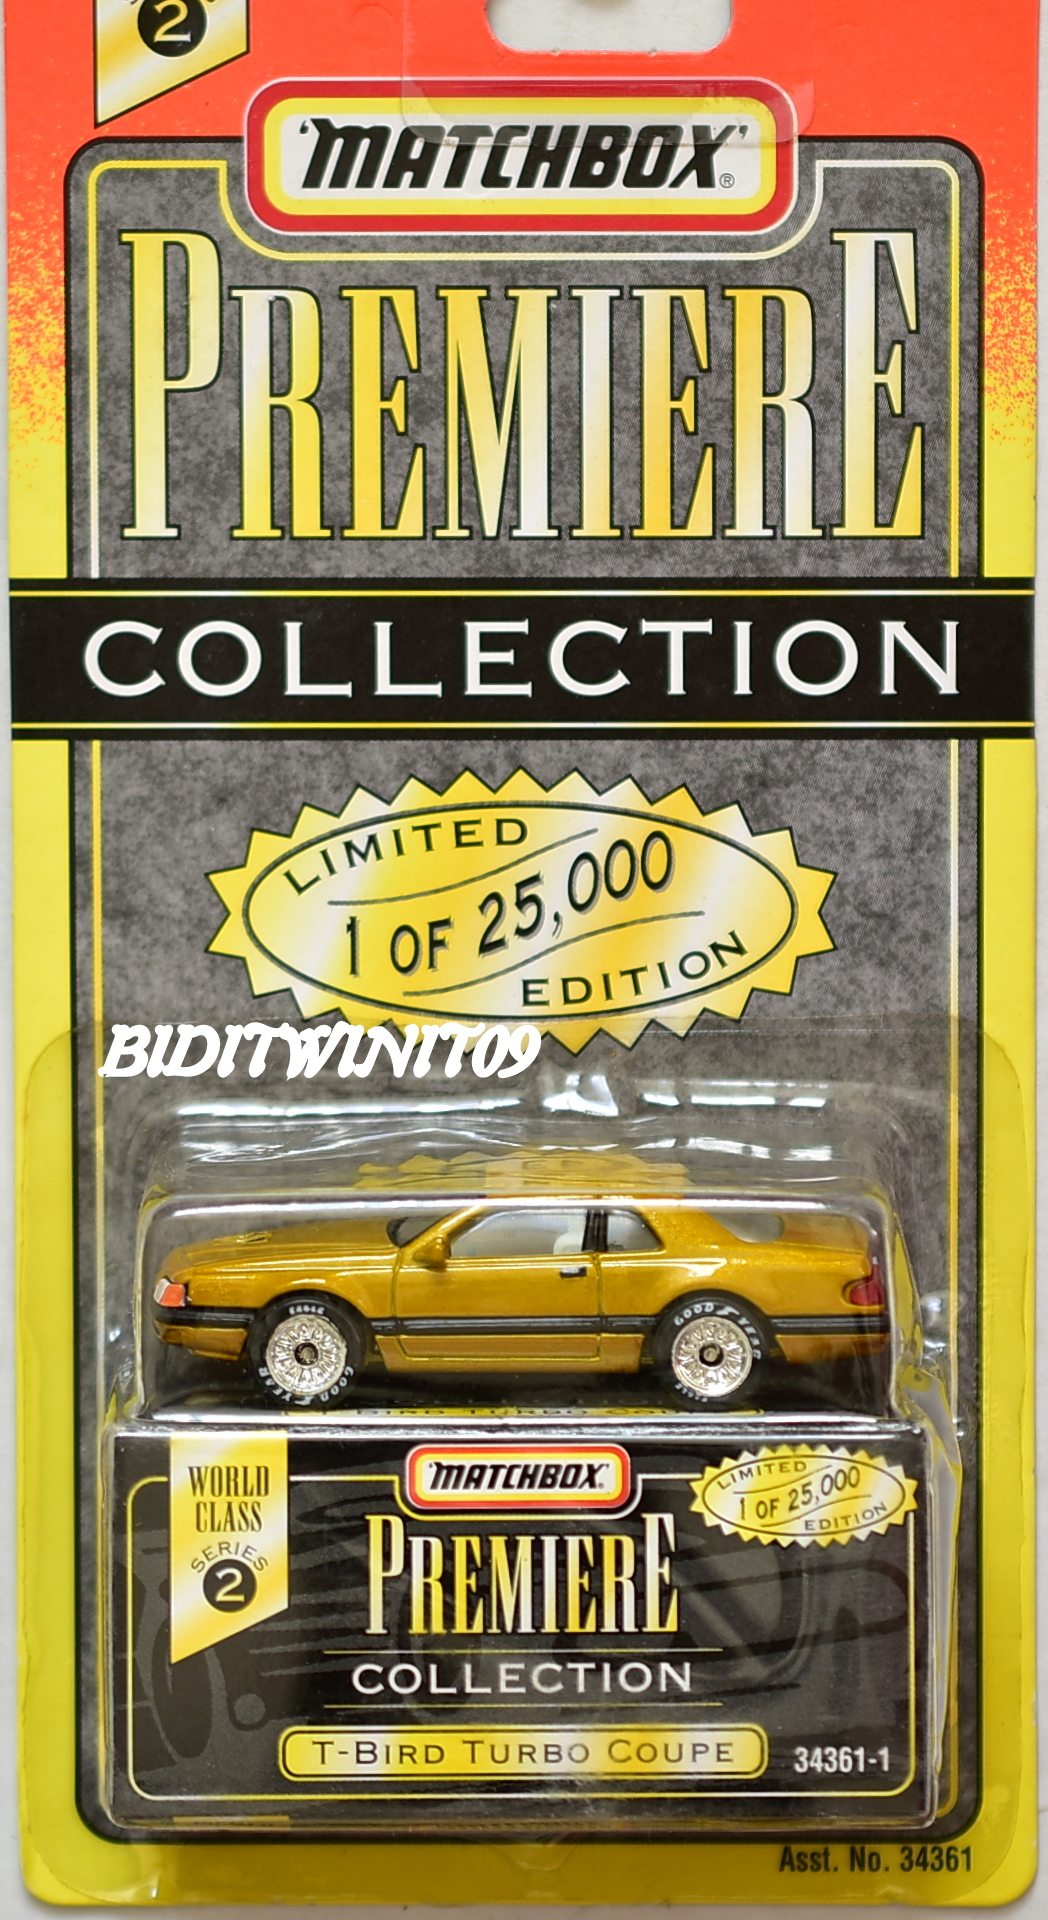 MATCHBOX PREMIERE COLLECTION T-BIRD TURBO COUPE #34361 E+